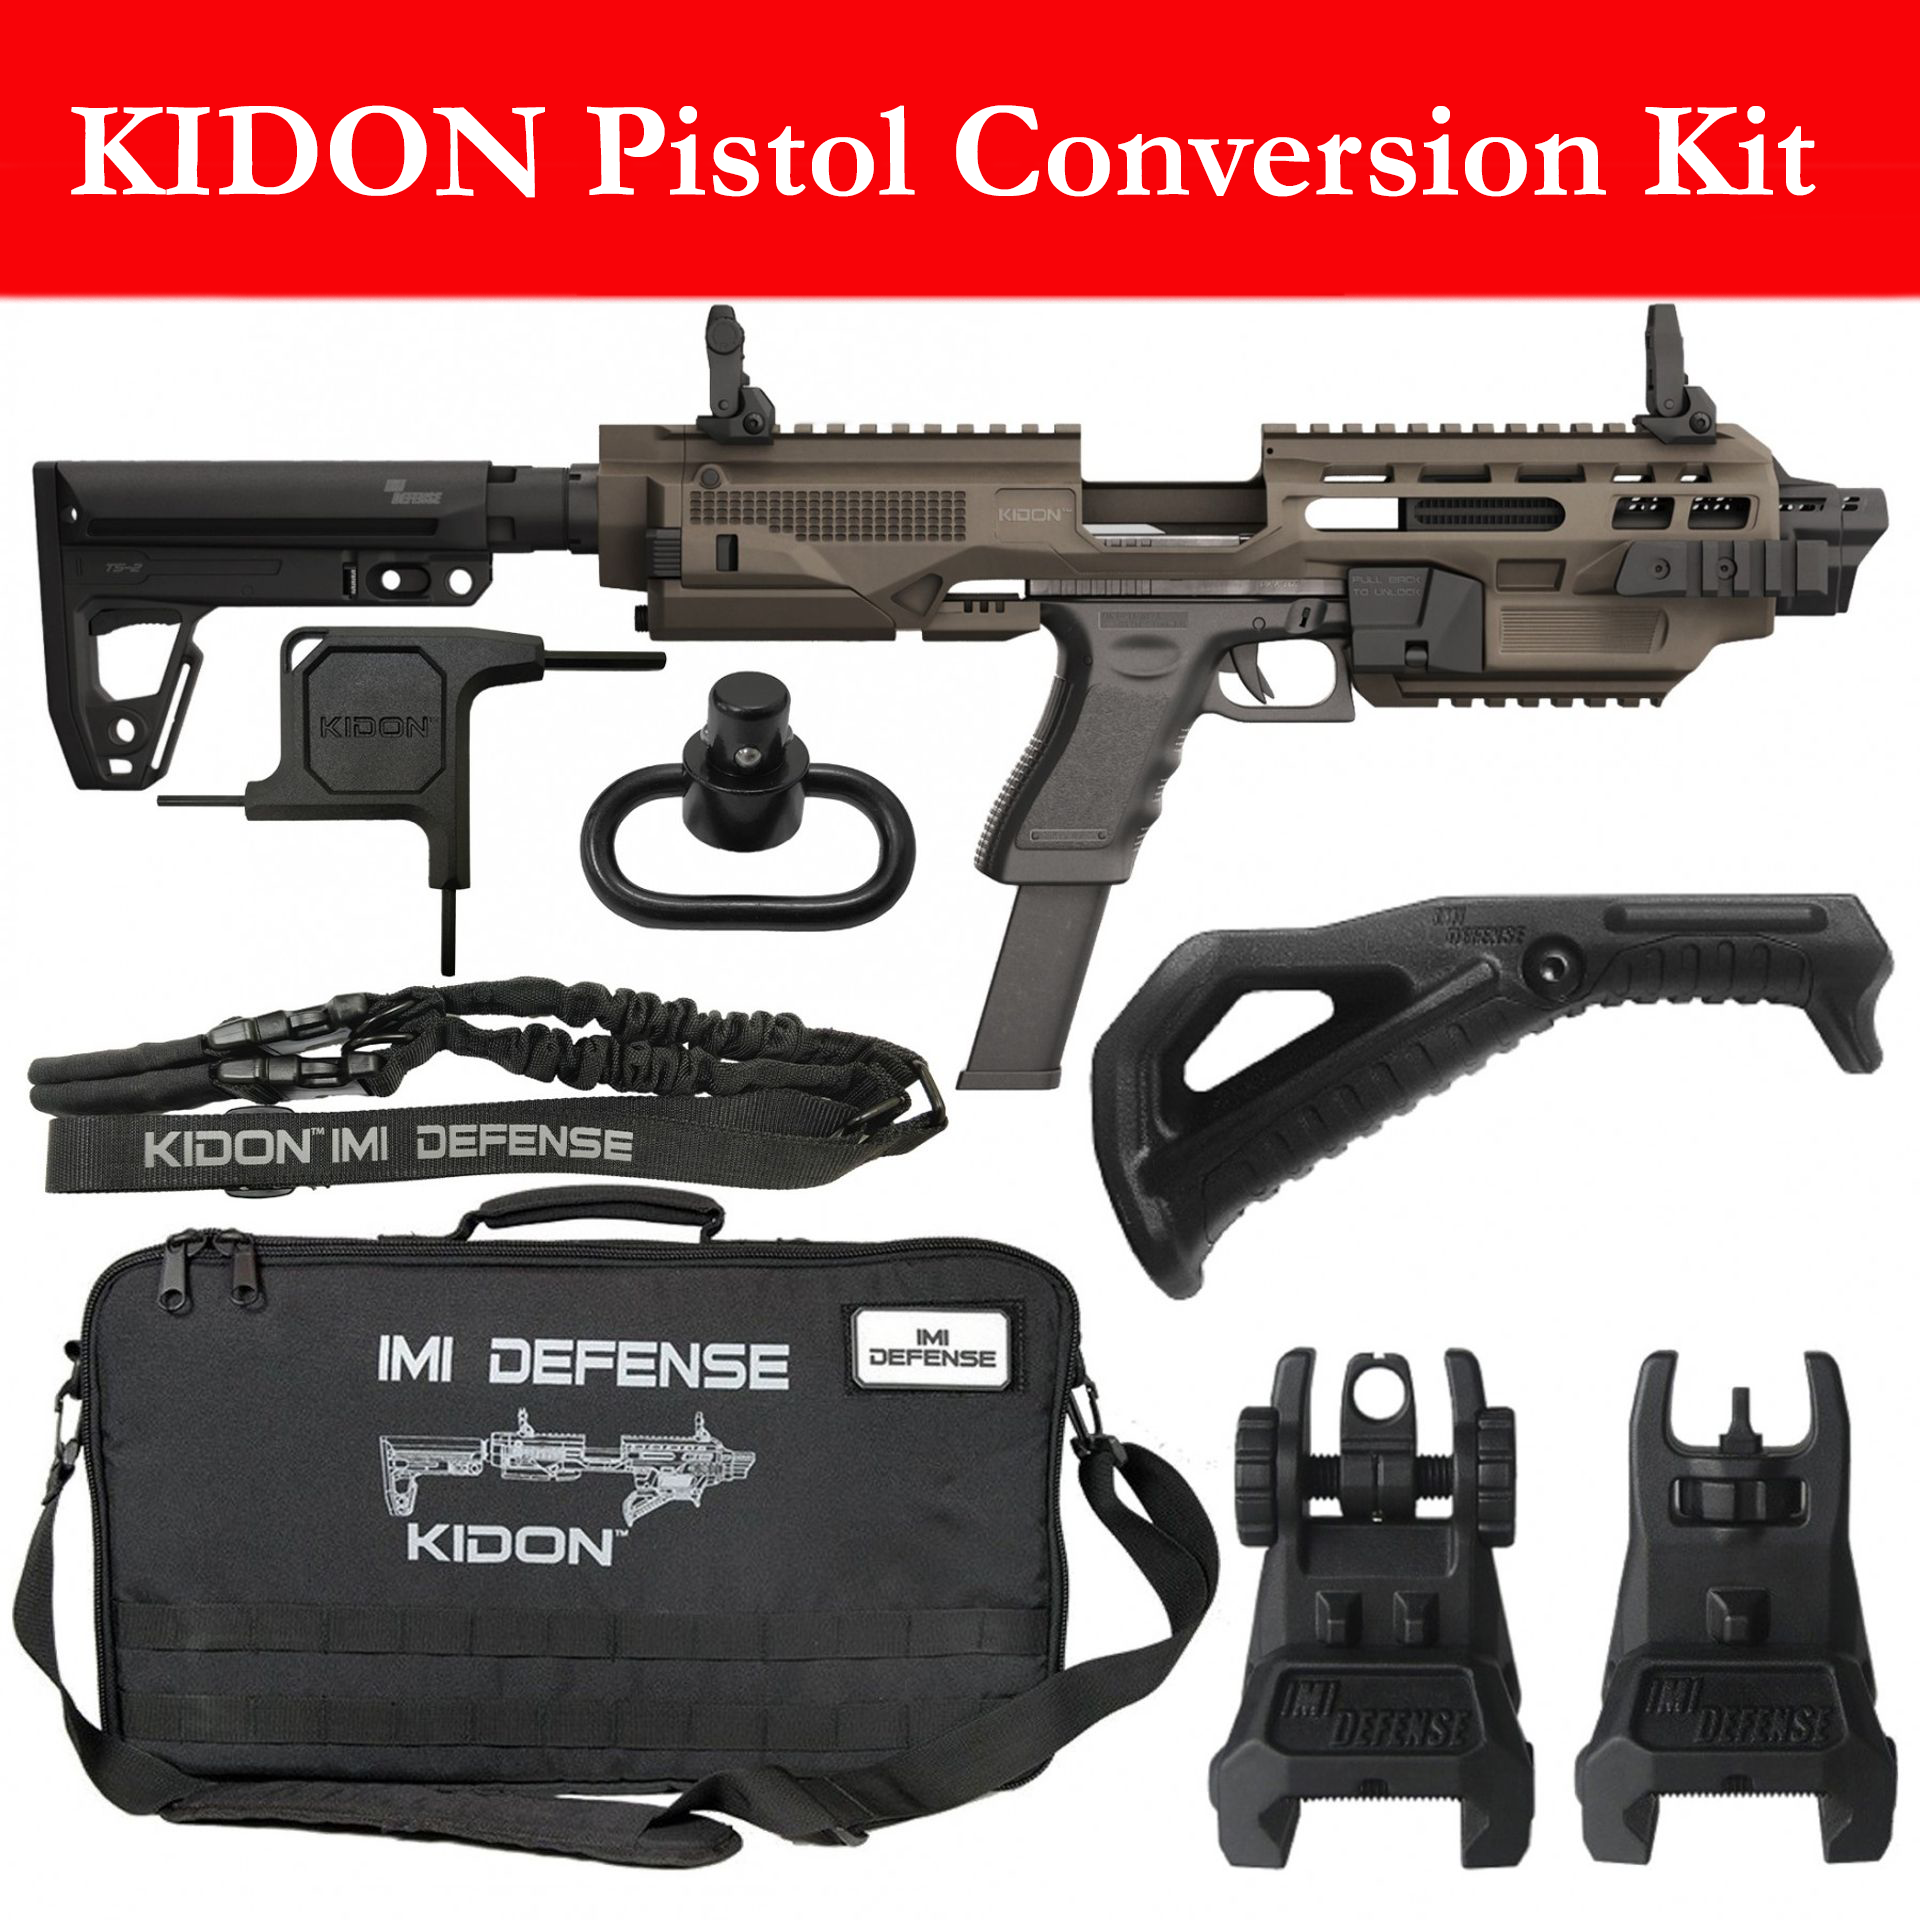 KIDON Pistol Conversion Kit Fits